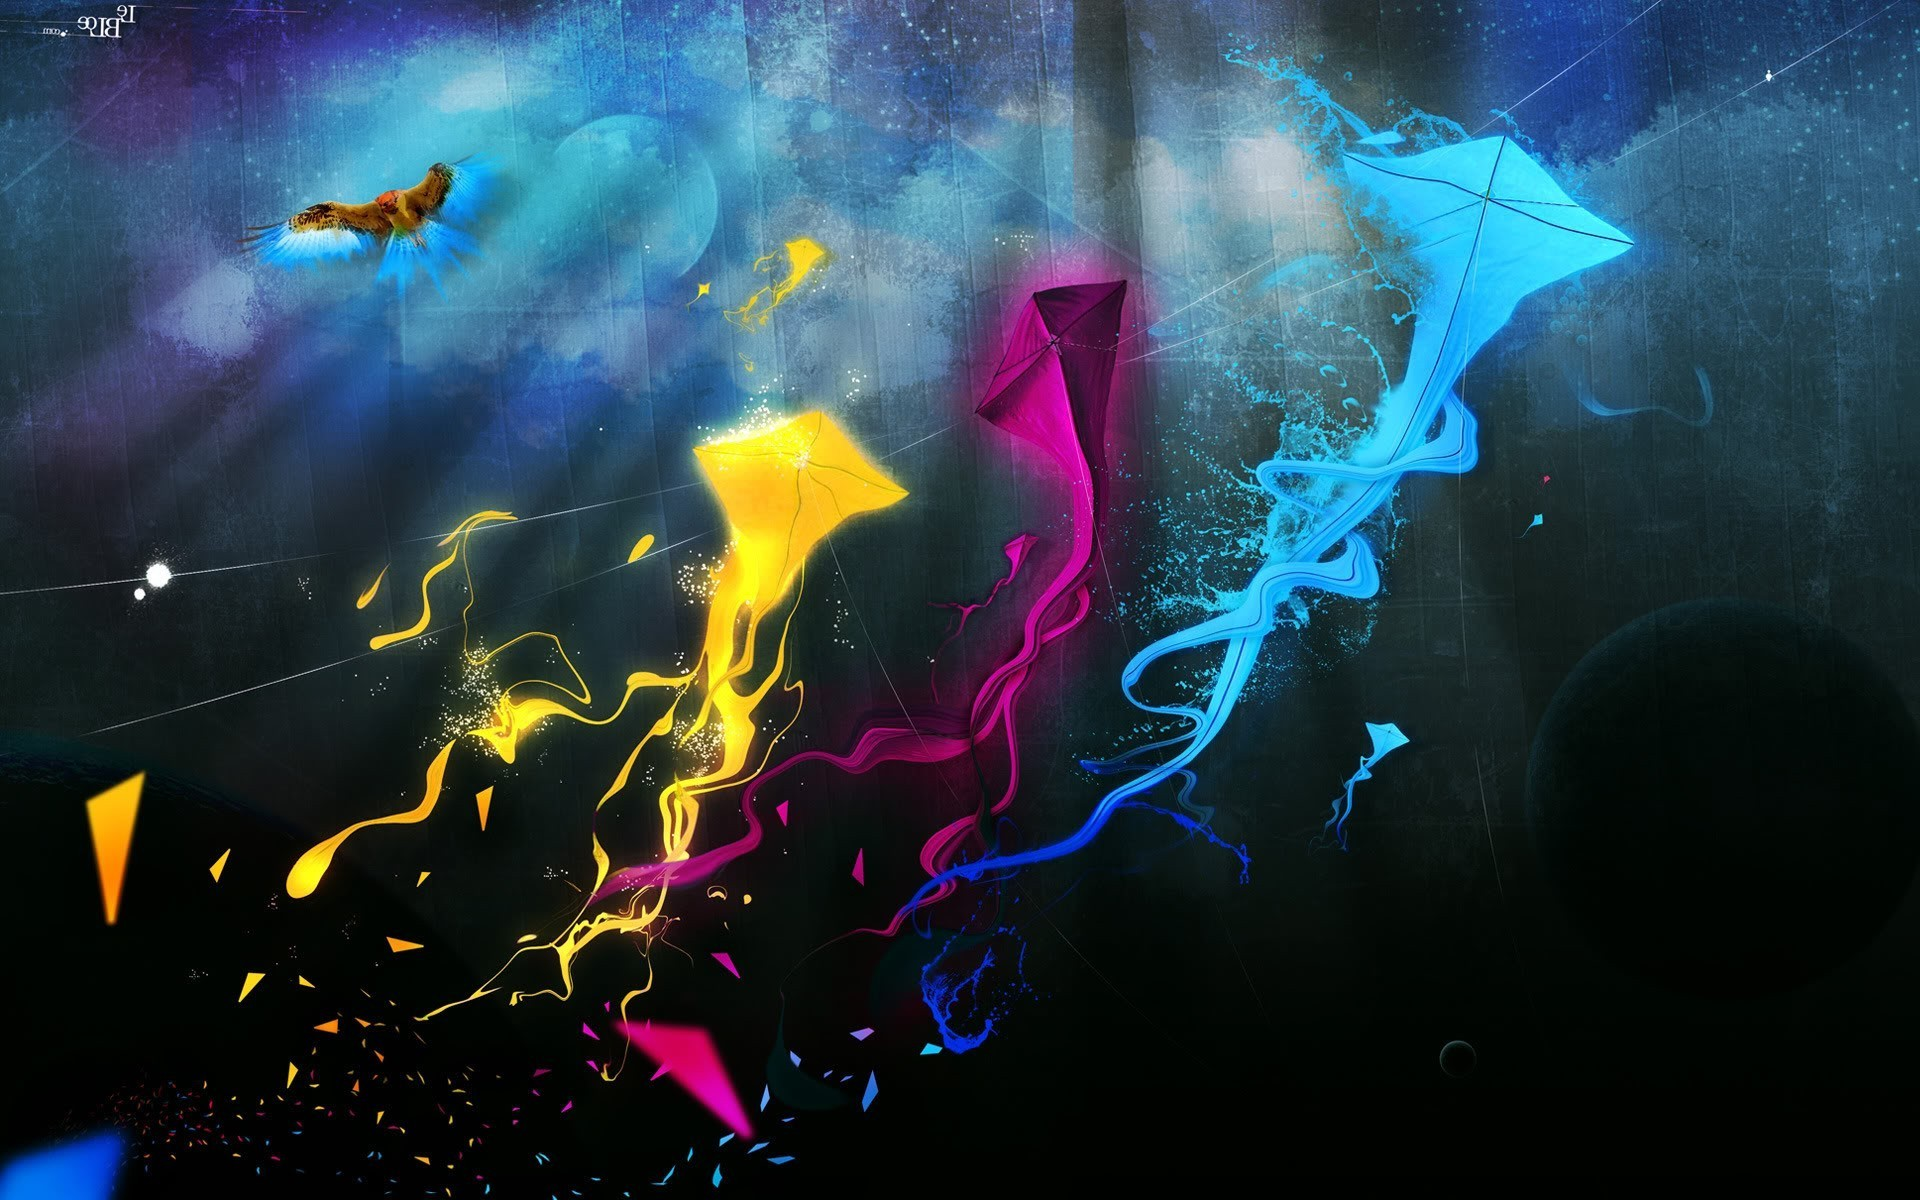 fantasy Art Kites Streaks CMYK Wallpapers HD Desktop 1920x1200